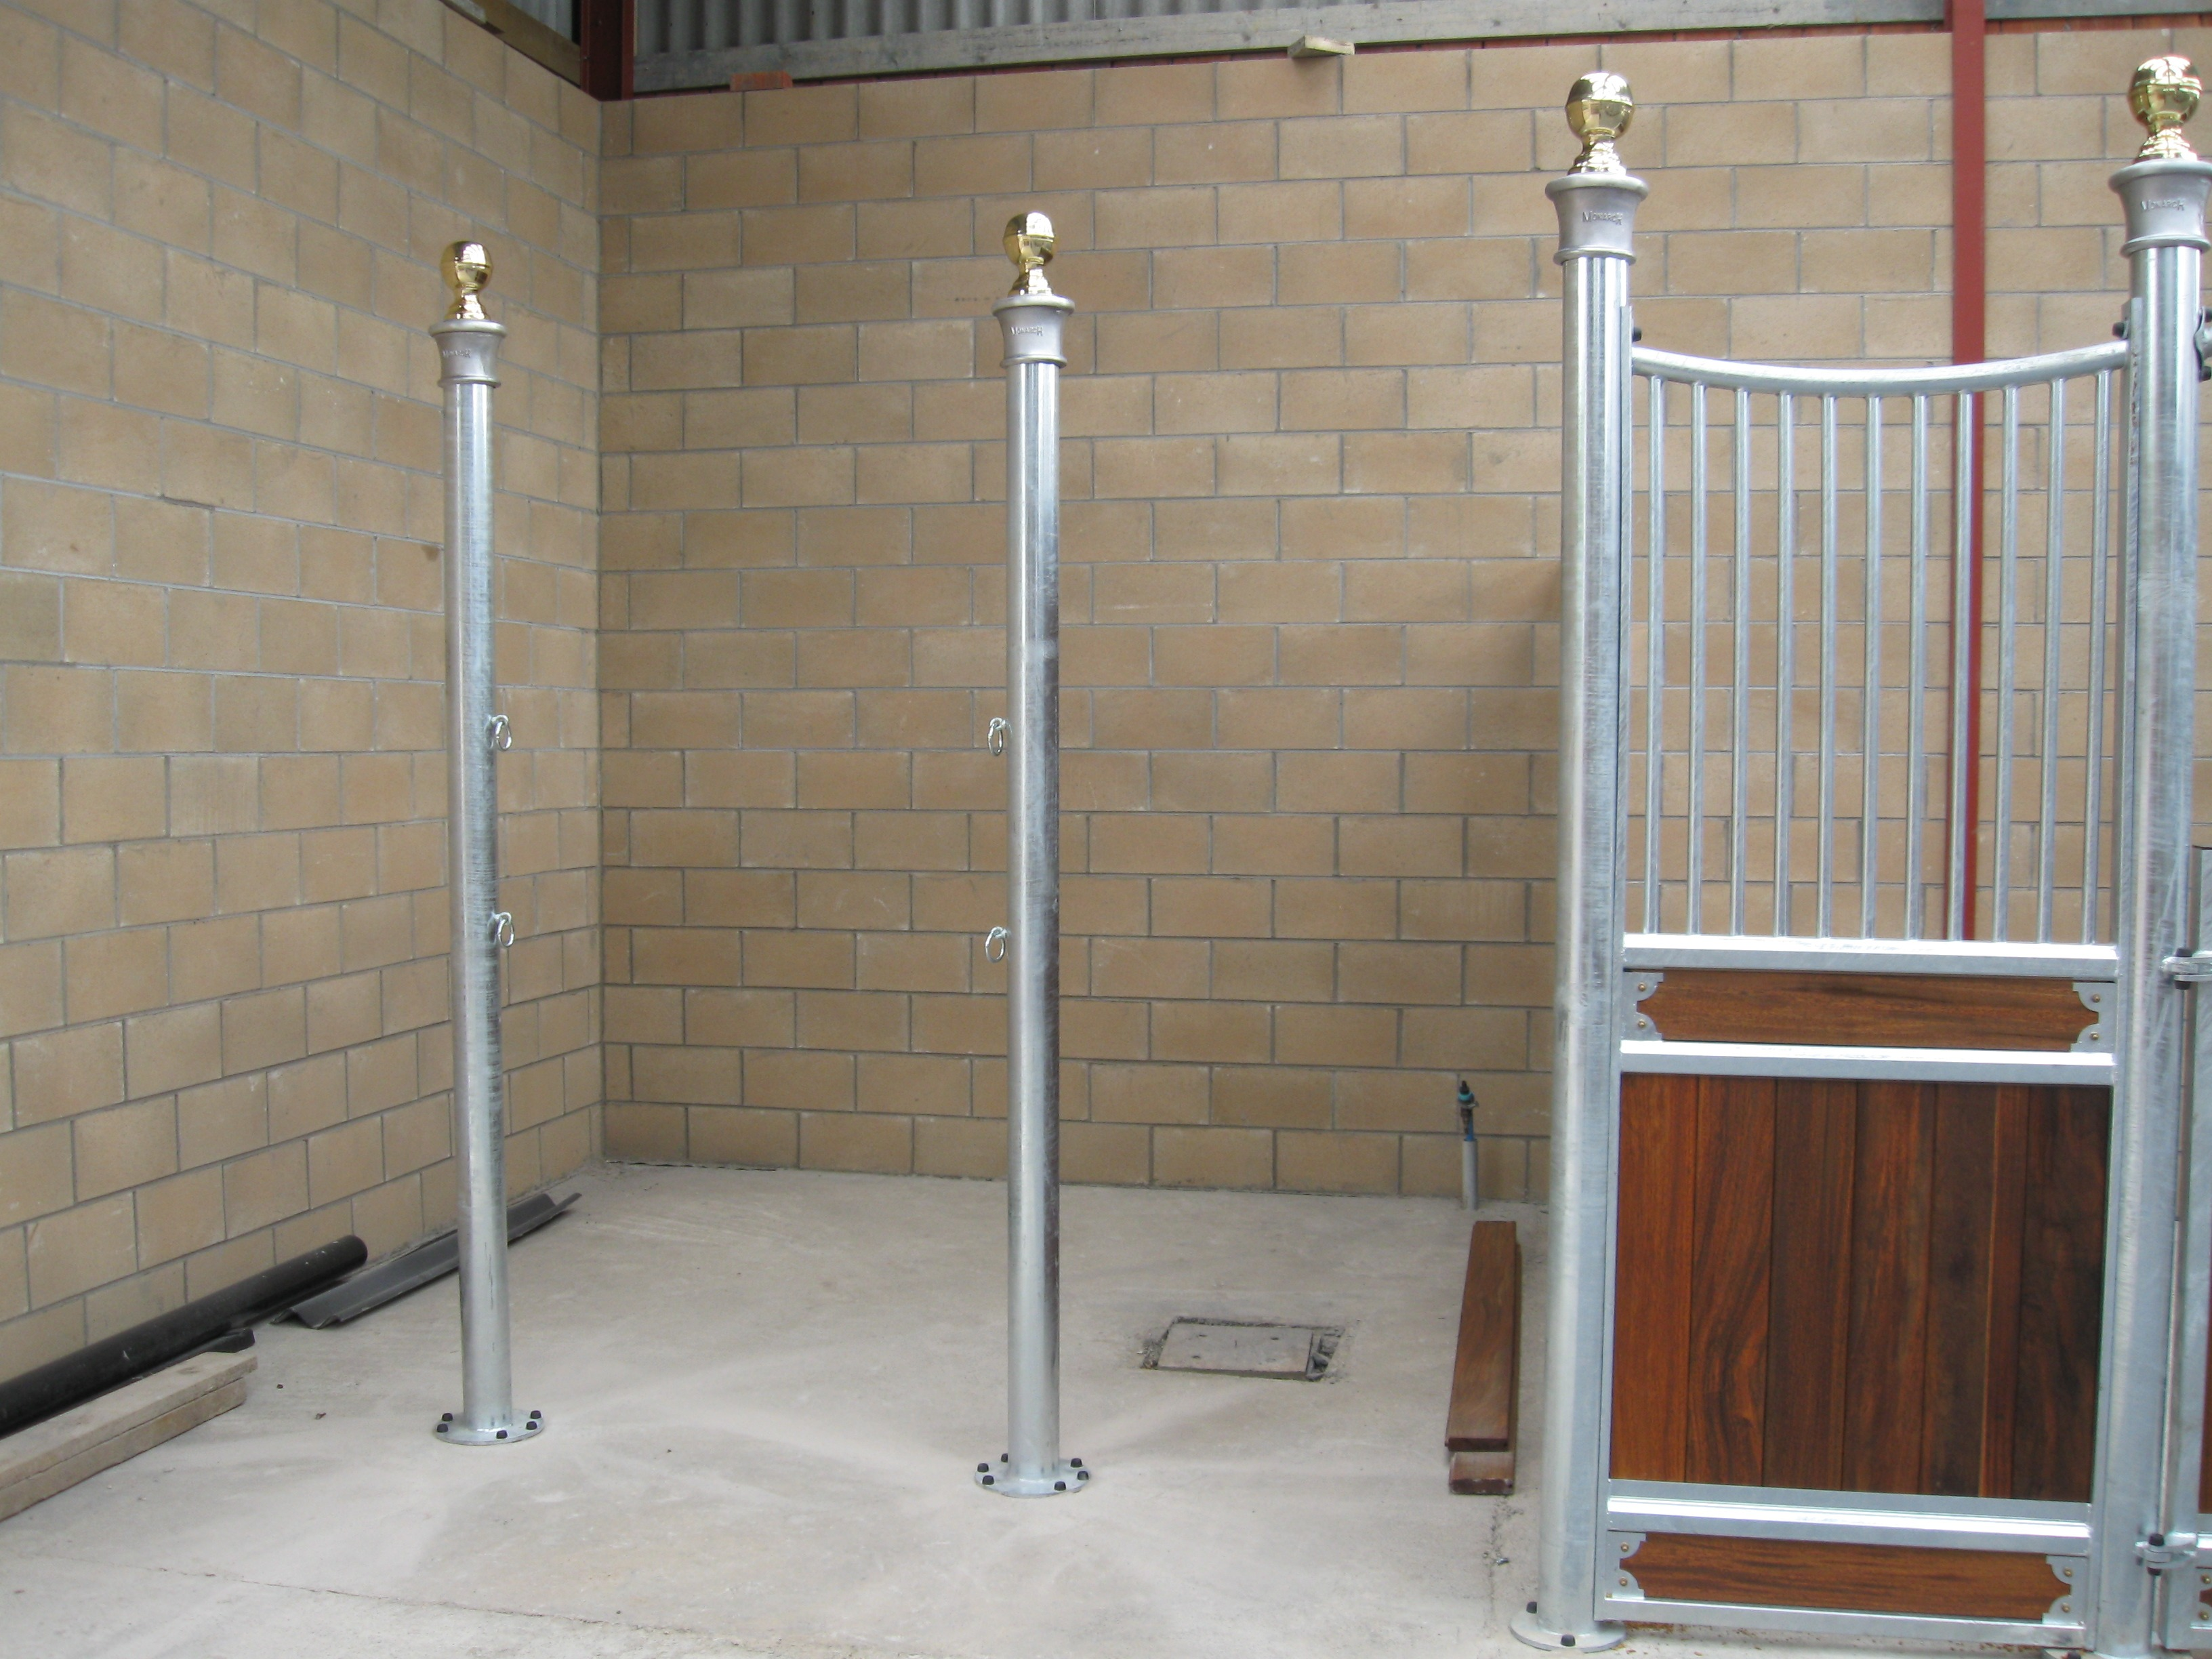 Majestic Cross Tie Posts With Brass Ball Finials